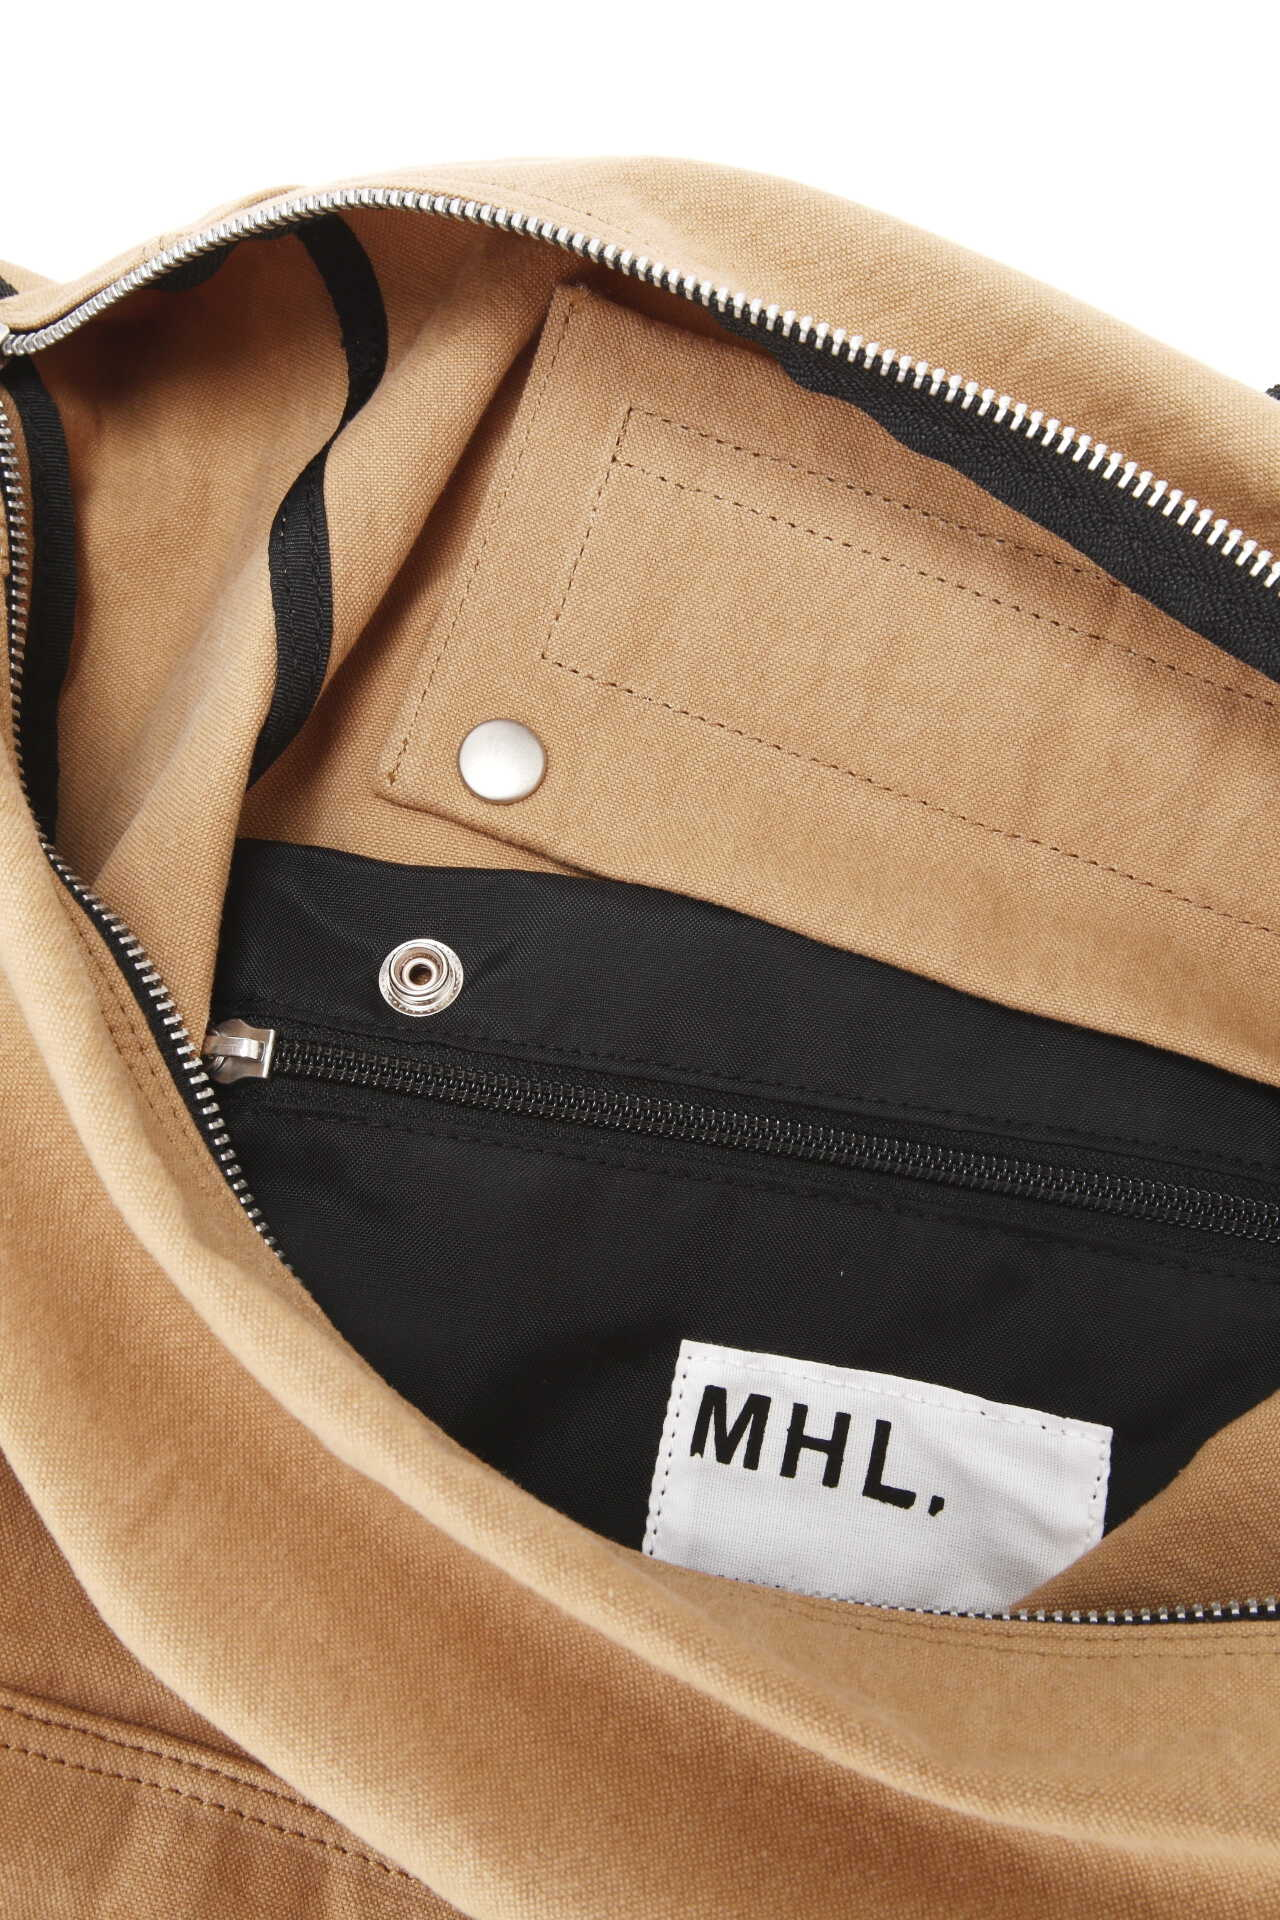 WASHED COTTON CANVAS(MHL SHOP限定)10